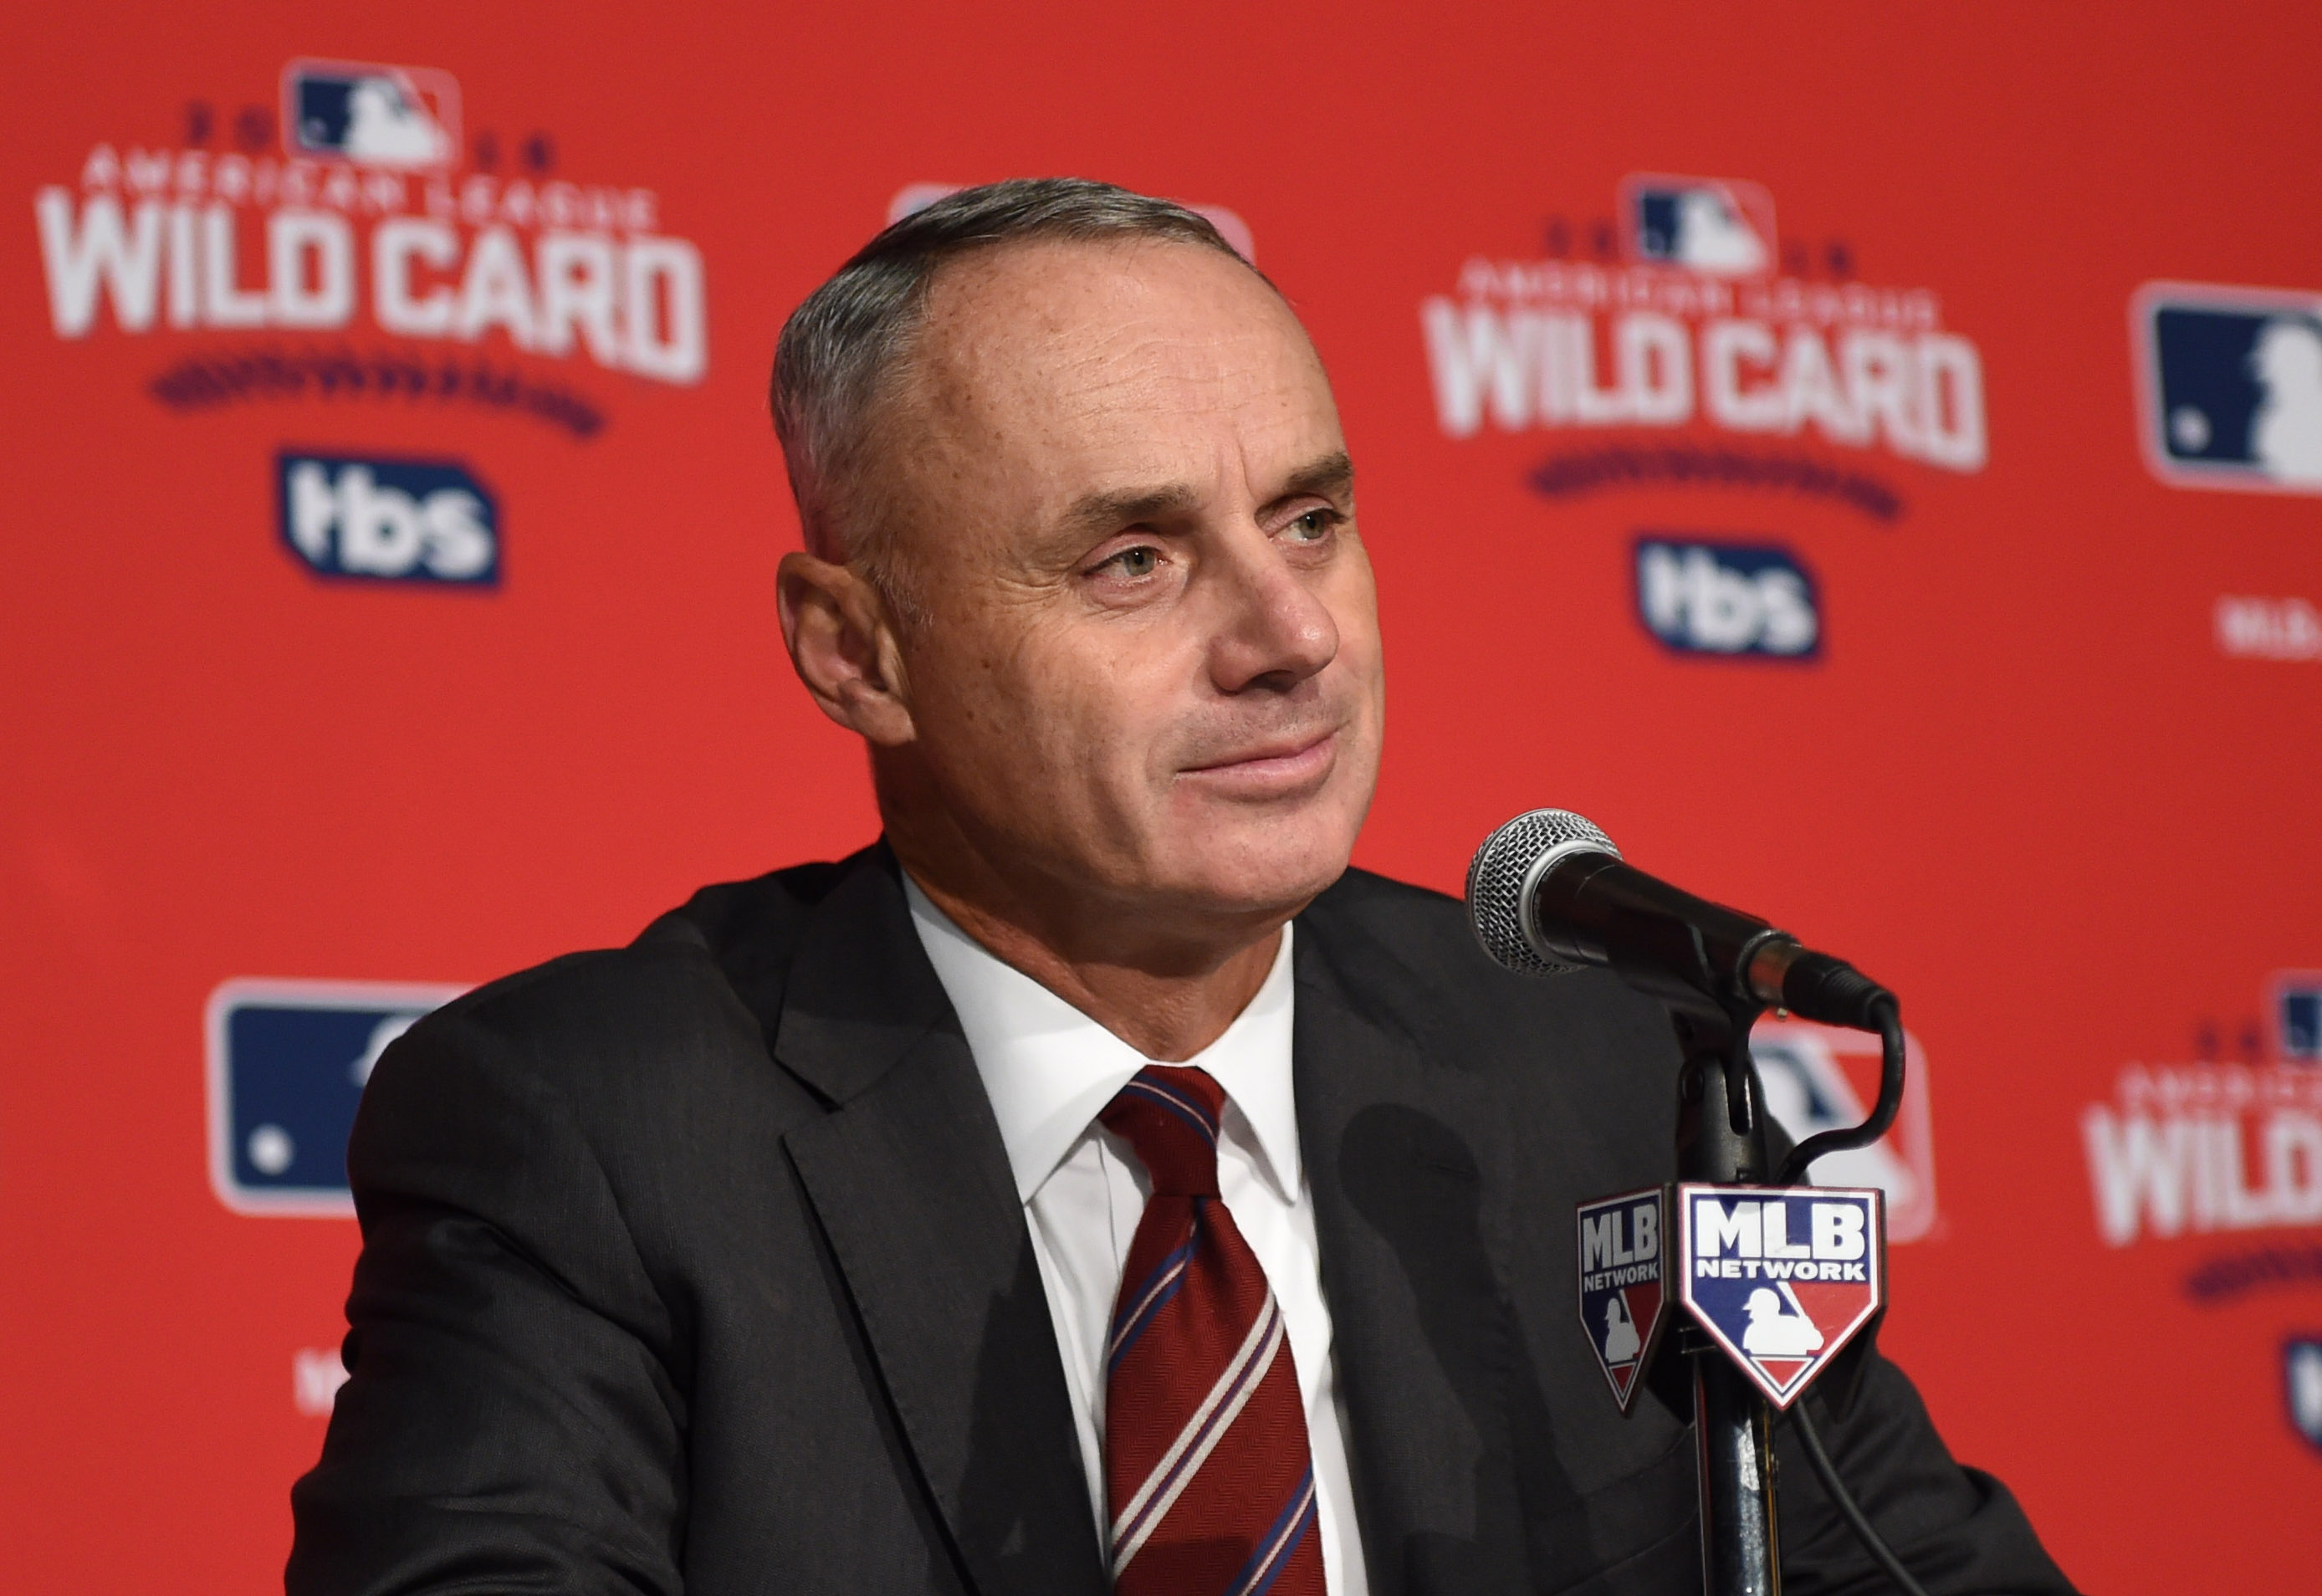 MLB Commissioner Rob Manfred's latest ideas on pace of game and gambling are at best strange and at worst disingenuous.. How will the Atlanta Braves vote on these things when the time comes?